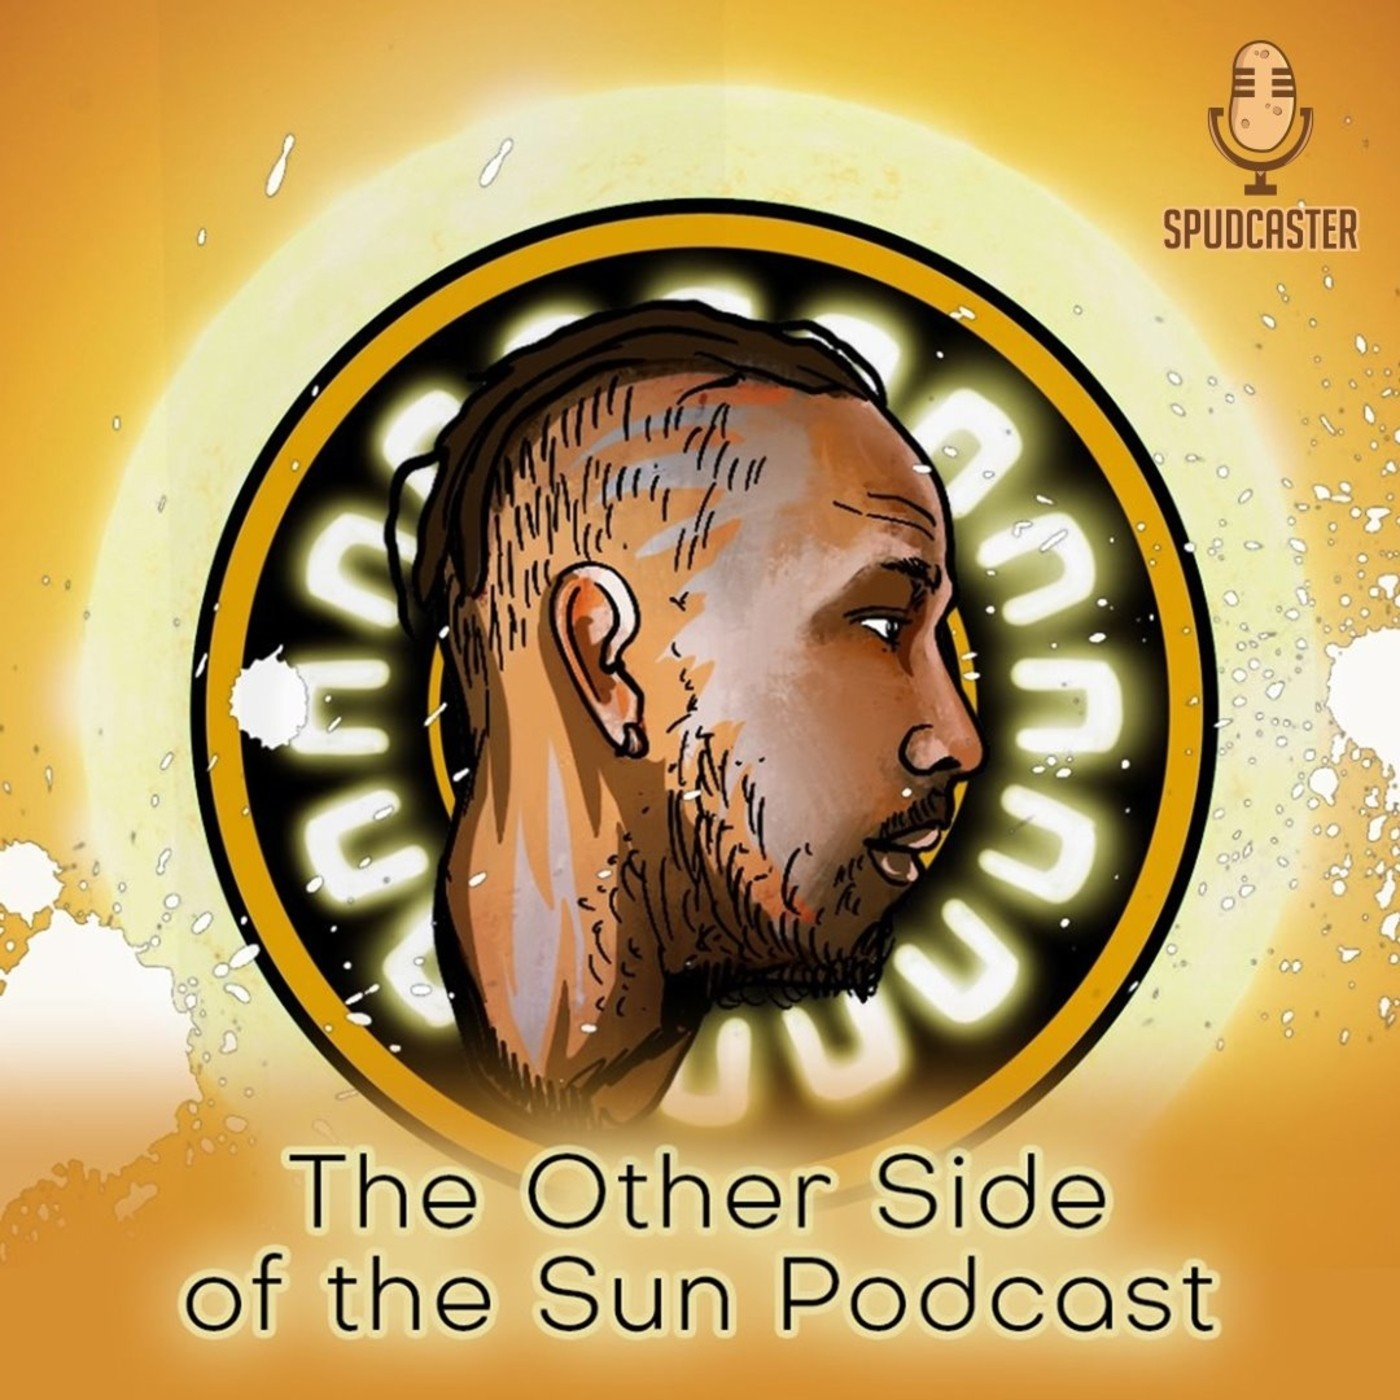 The Other Side of the Sun Podcast